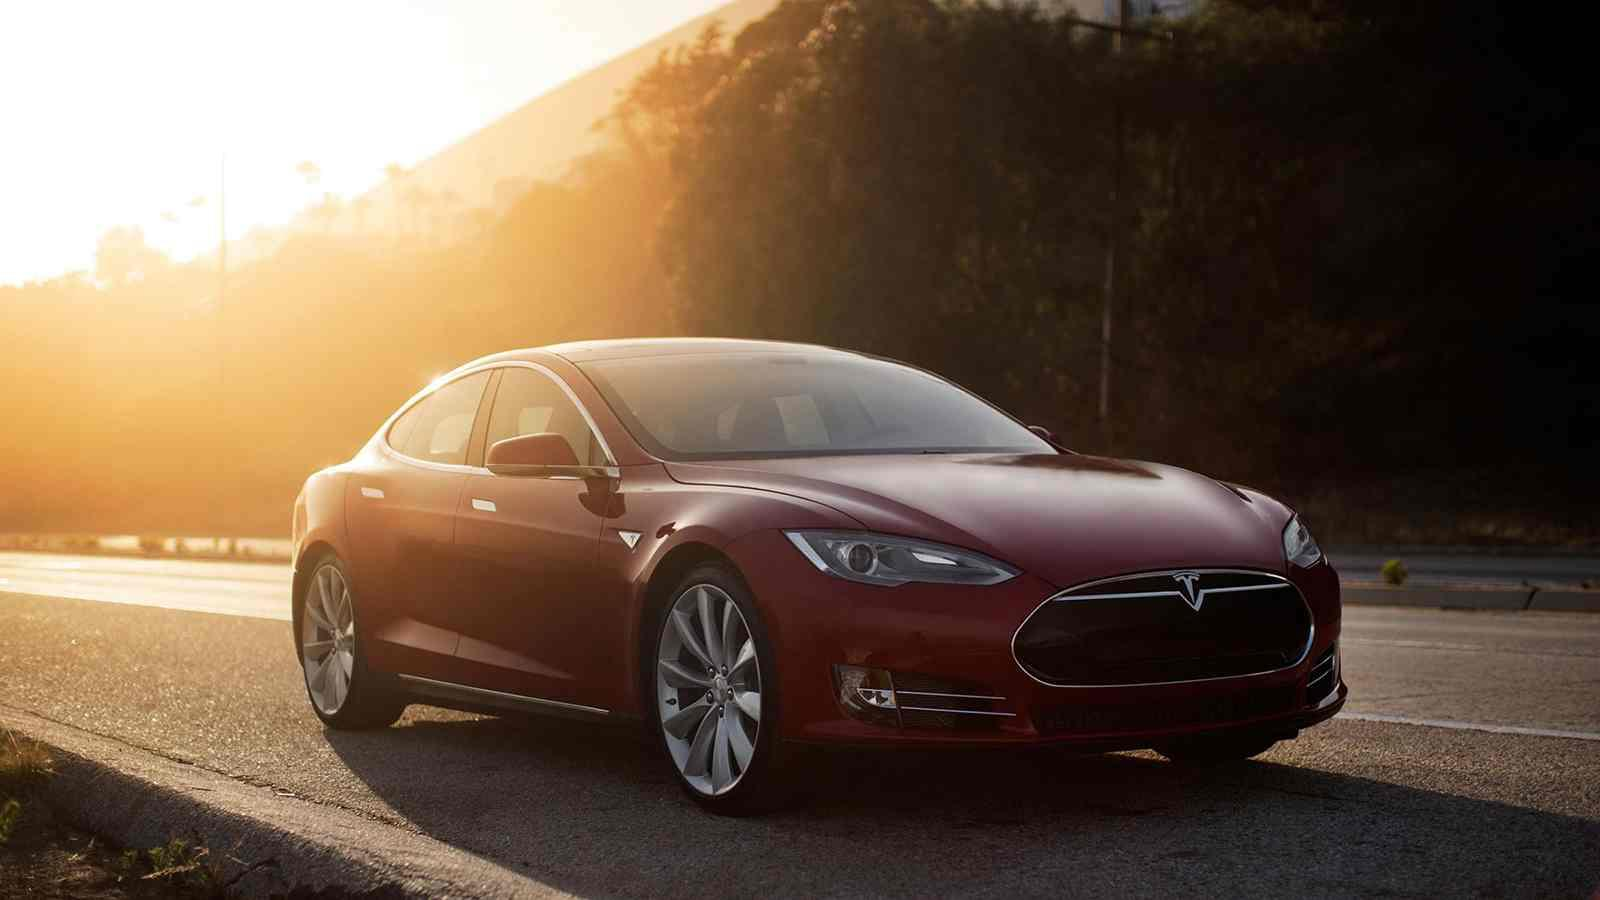 Singapore's Penalty for Electric Cars – The First Tesla Model S in Singapore